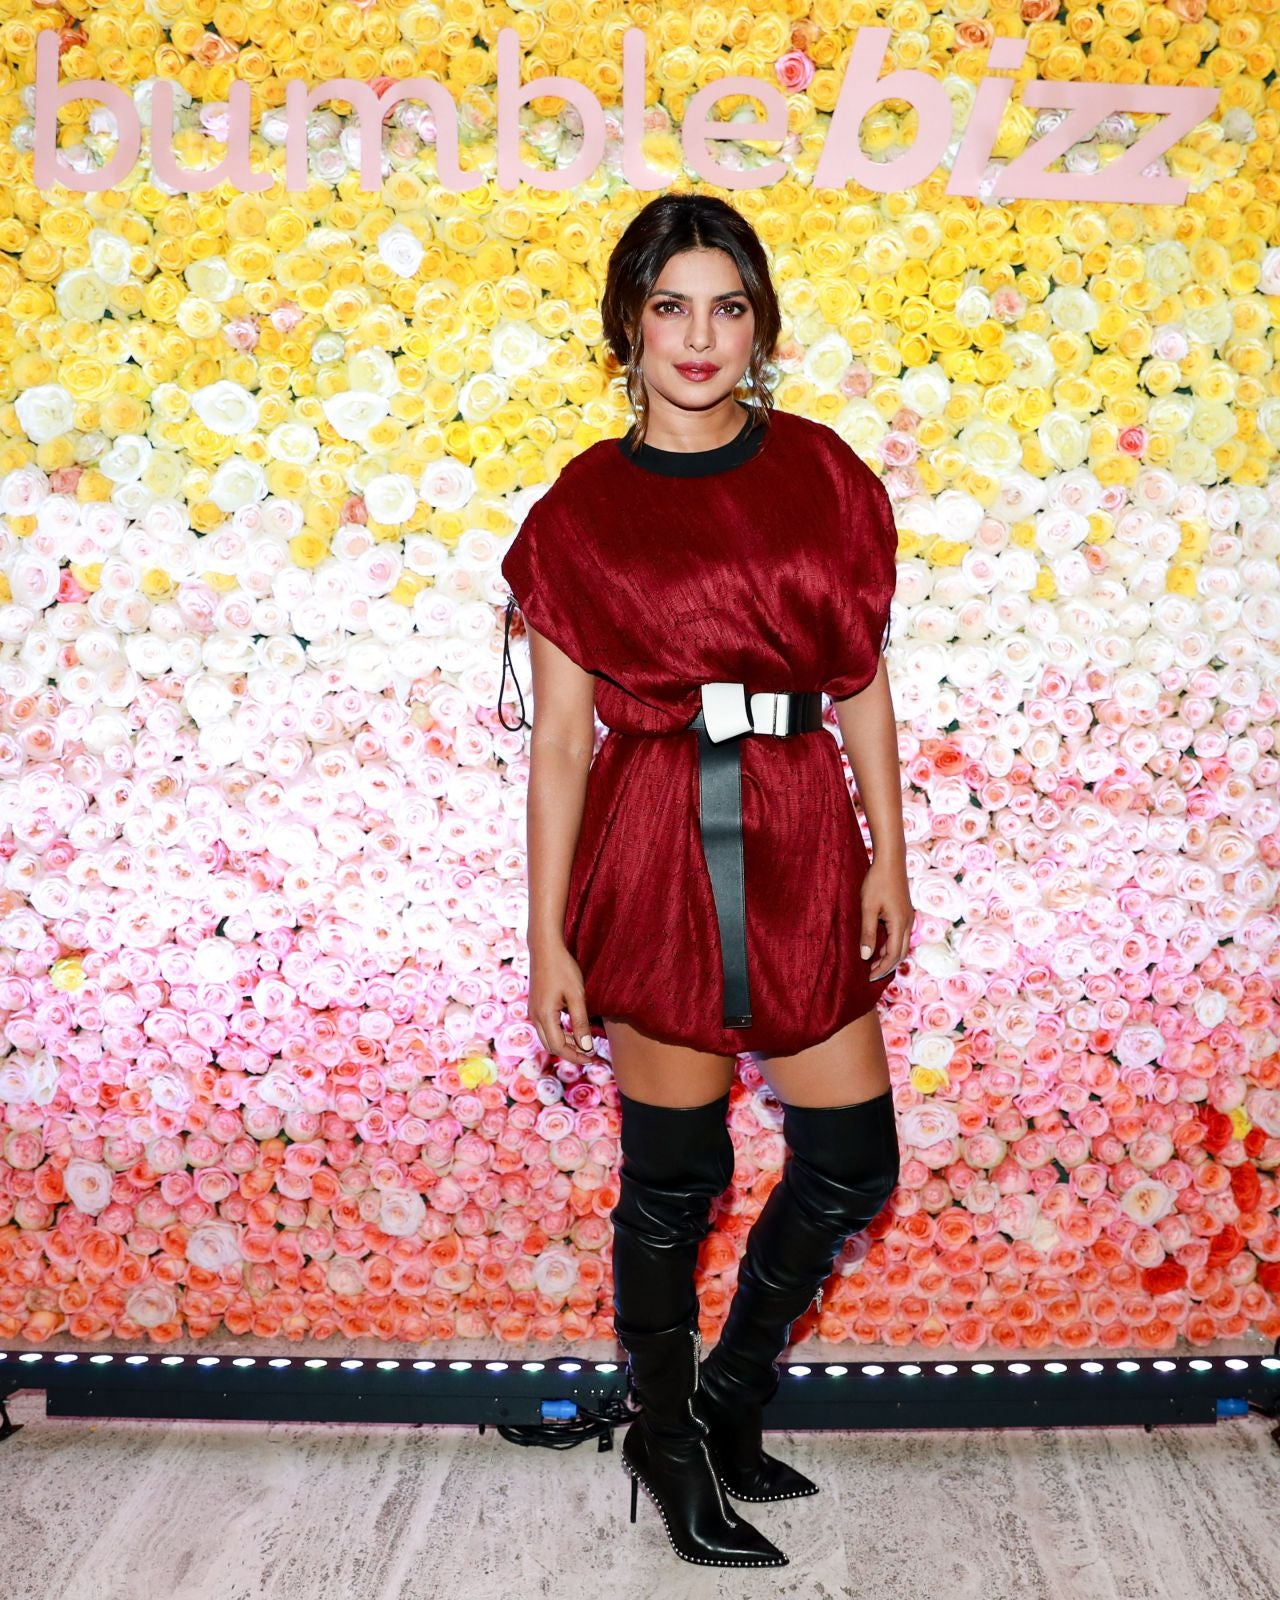 Priyanka Chopra Bumble Dinner Party in New York